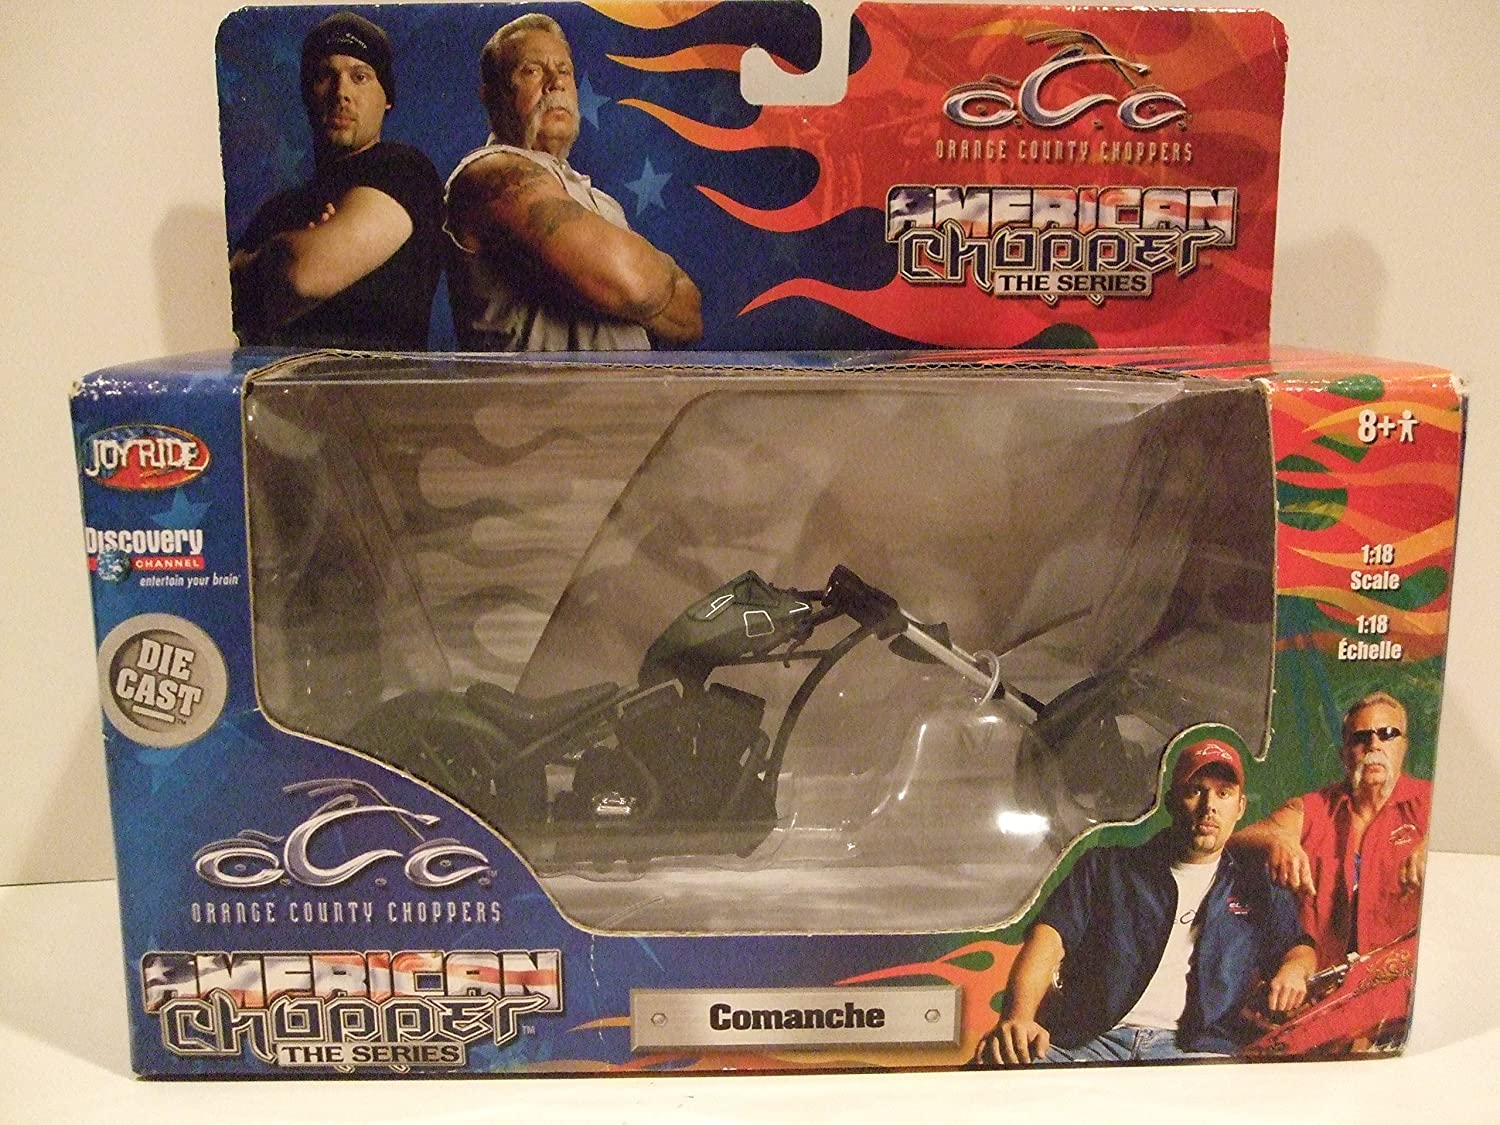 orange County Choppers  Comanche by Discovery Channel